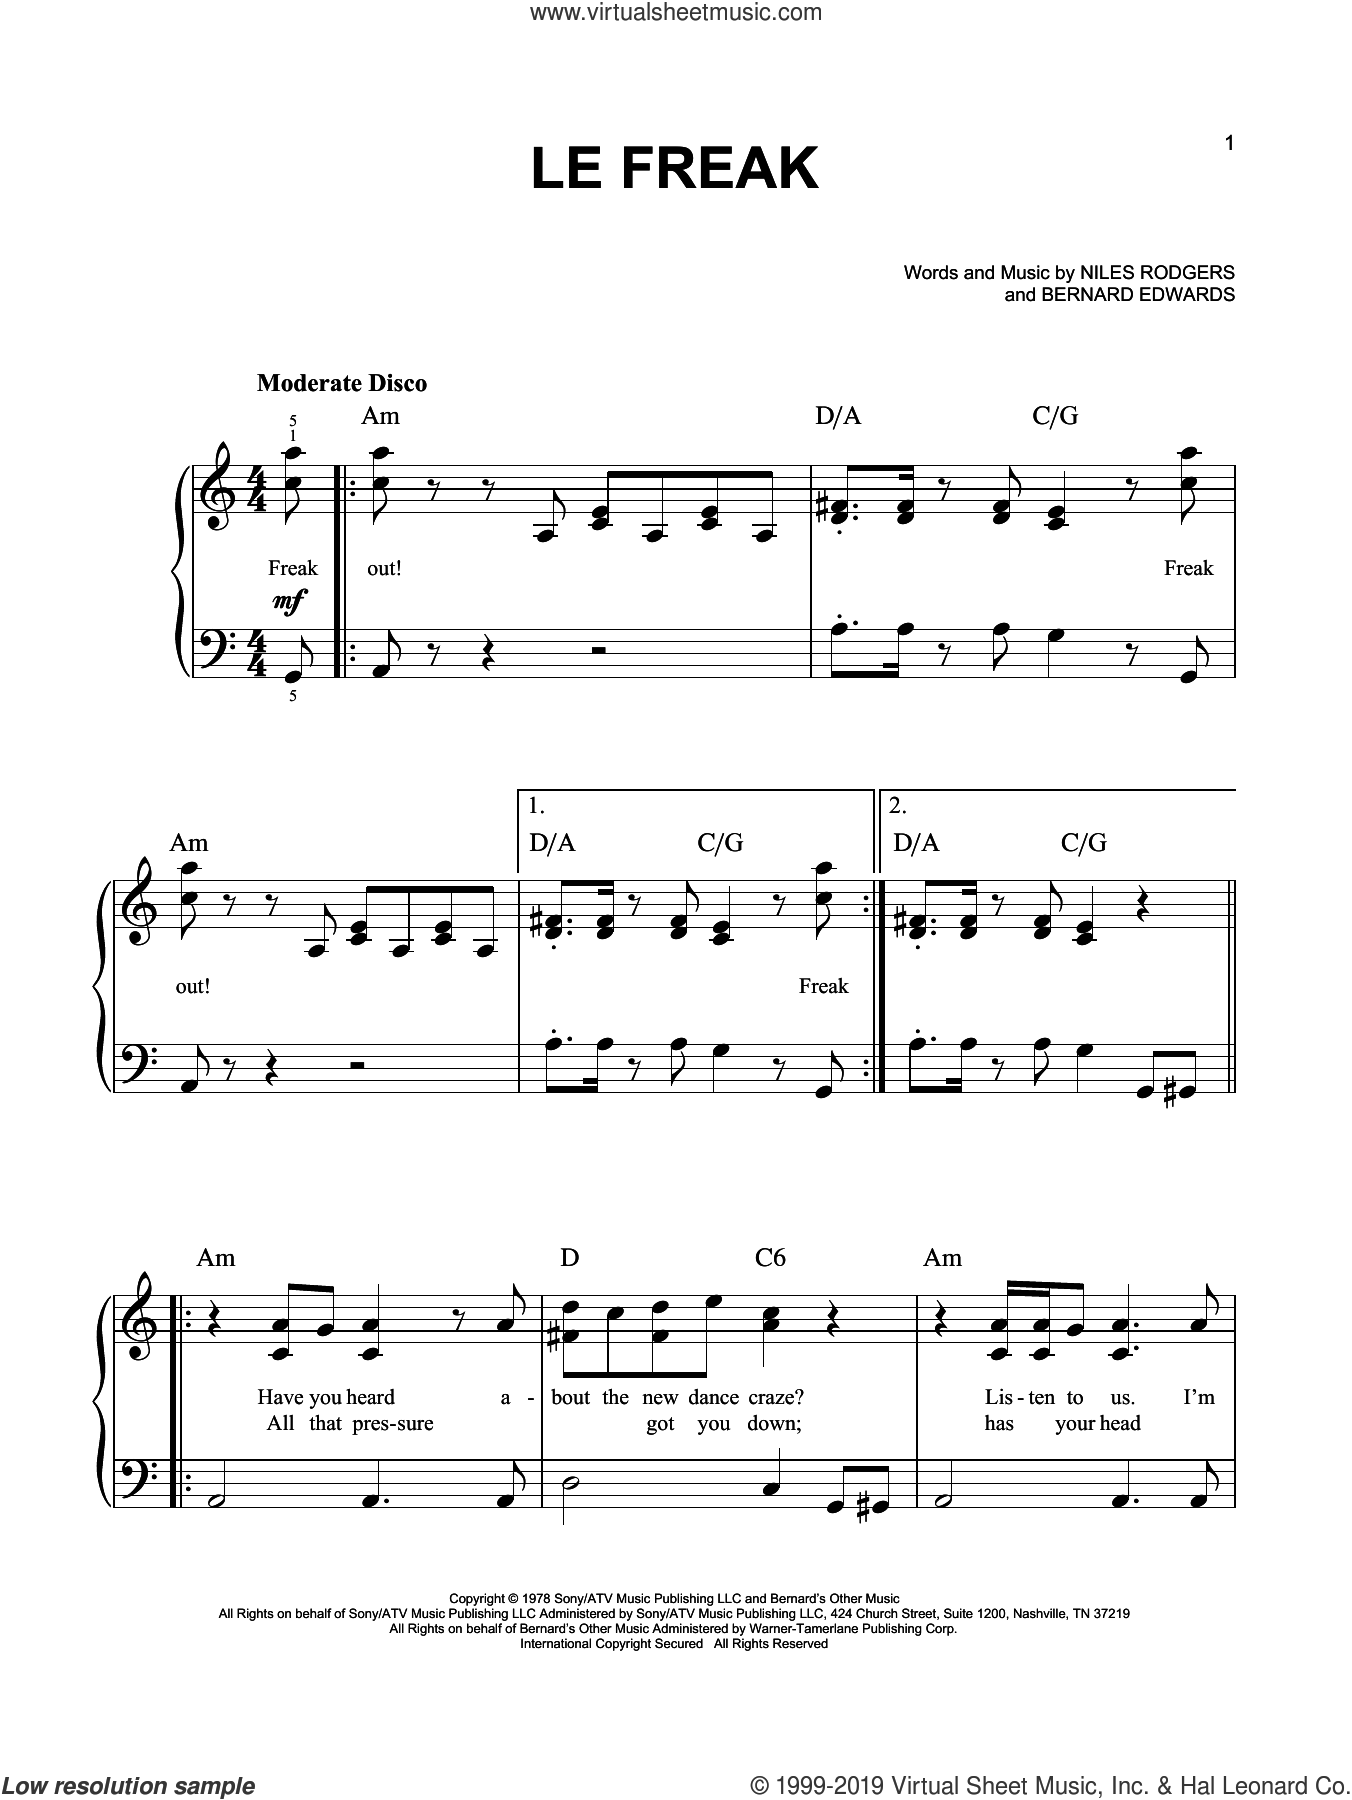 Le Freak sheet music for piano solo by Chic, Bernard Edwards and Nile Rodgers, easy skill level